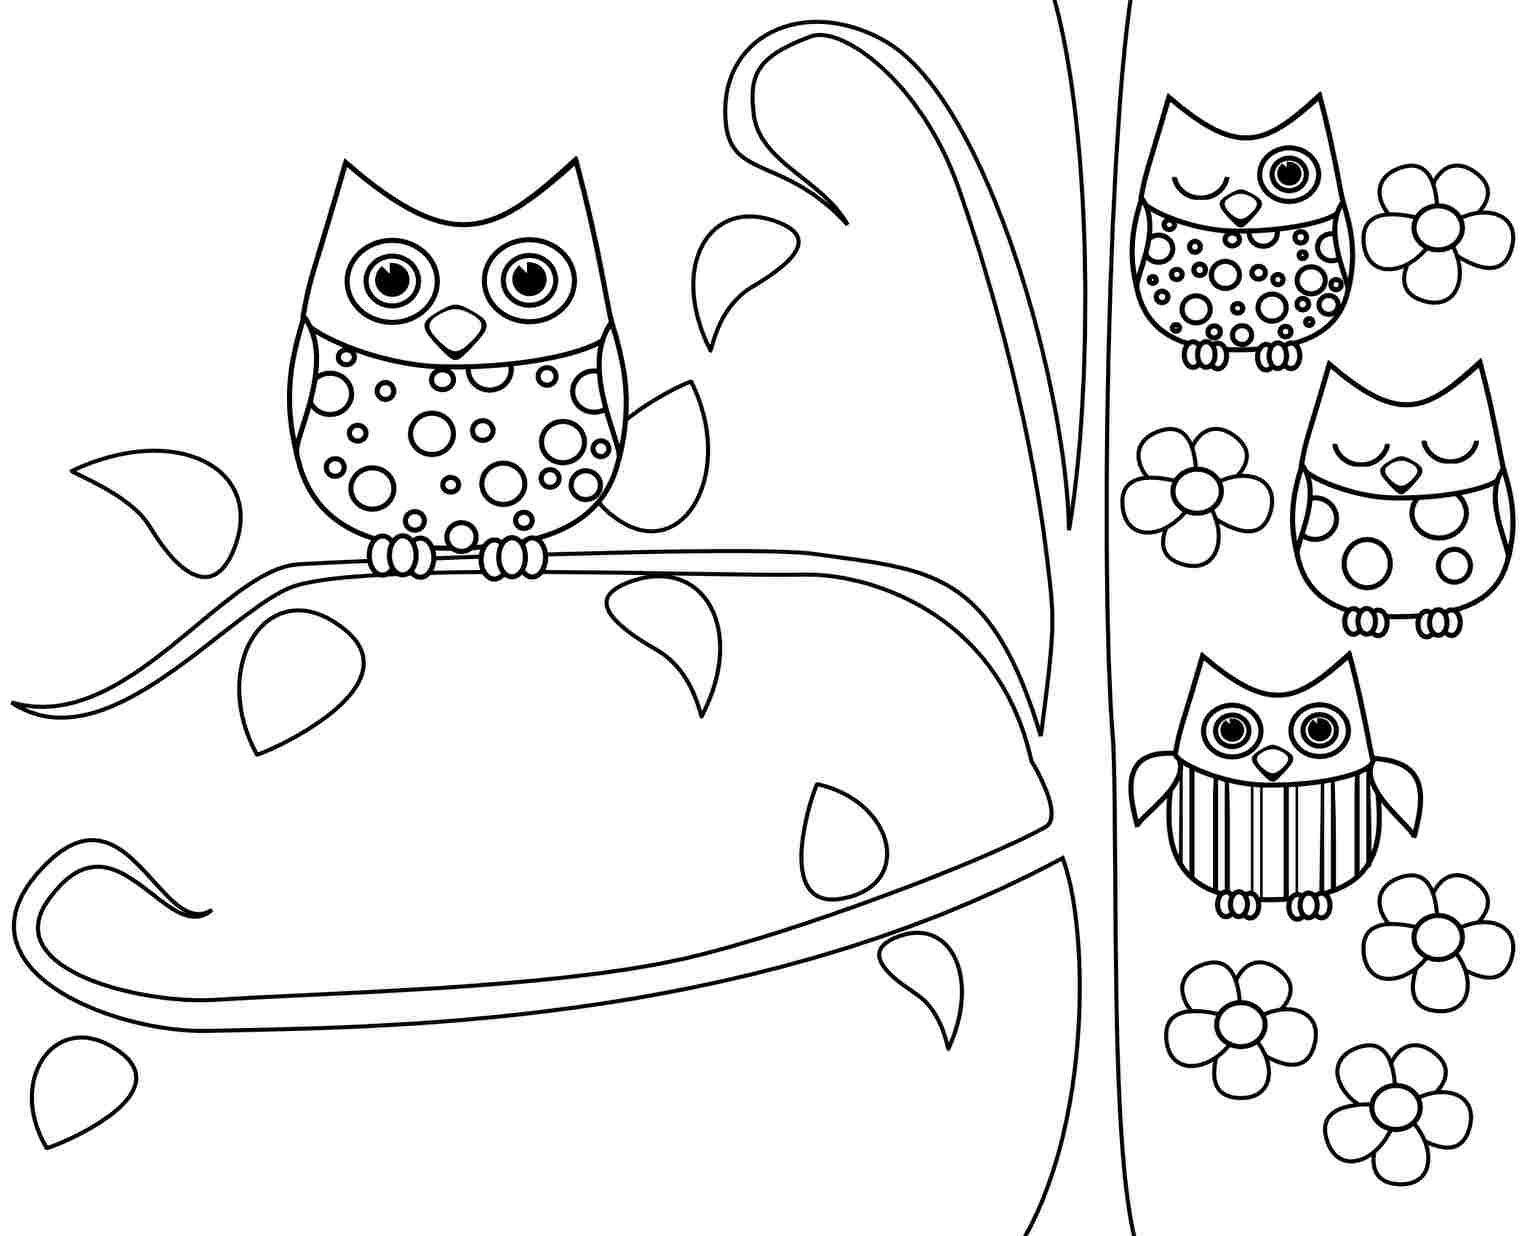 Owl Coloring Pages | Work And Play | Pinterest | Owl Coloring Pages - Free Printable Owl Coloring Sheets